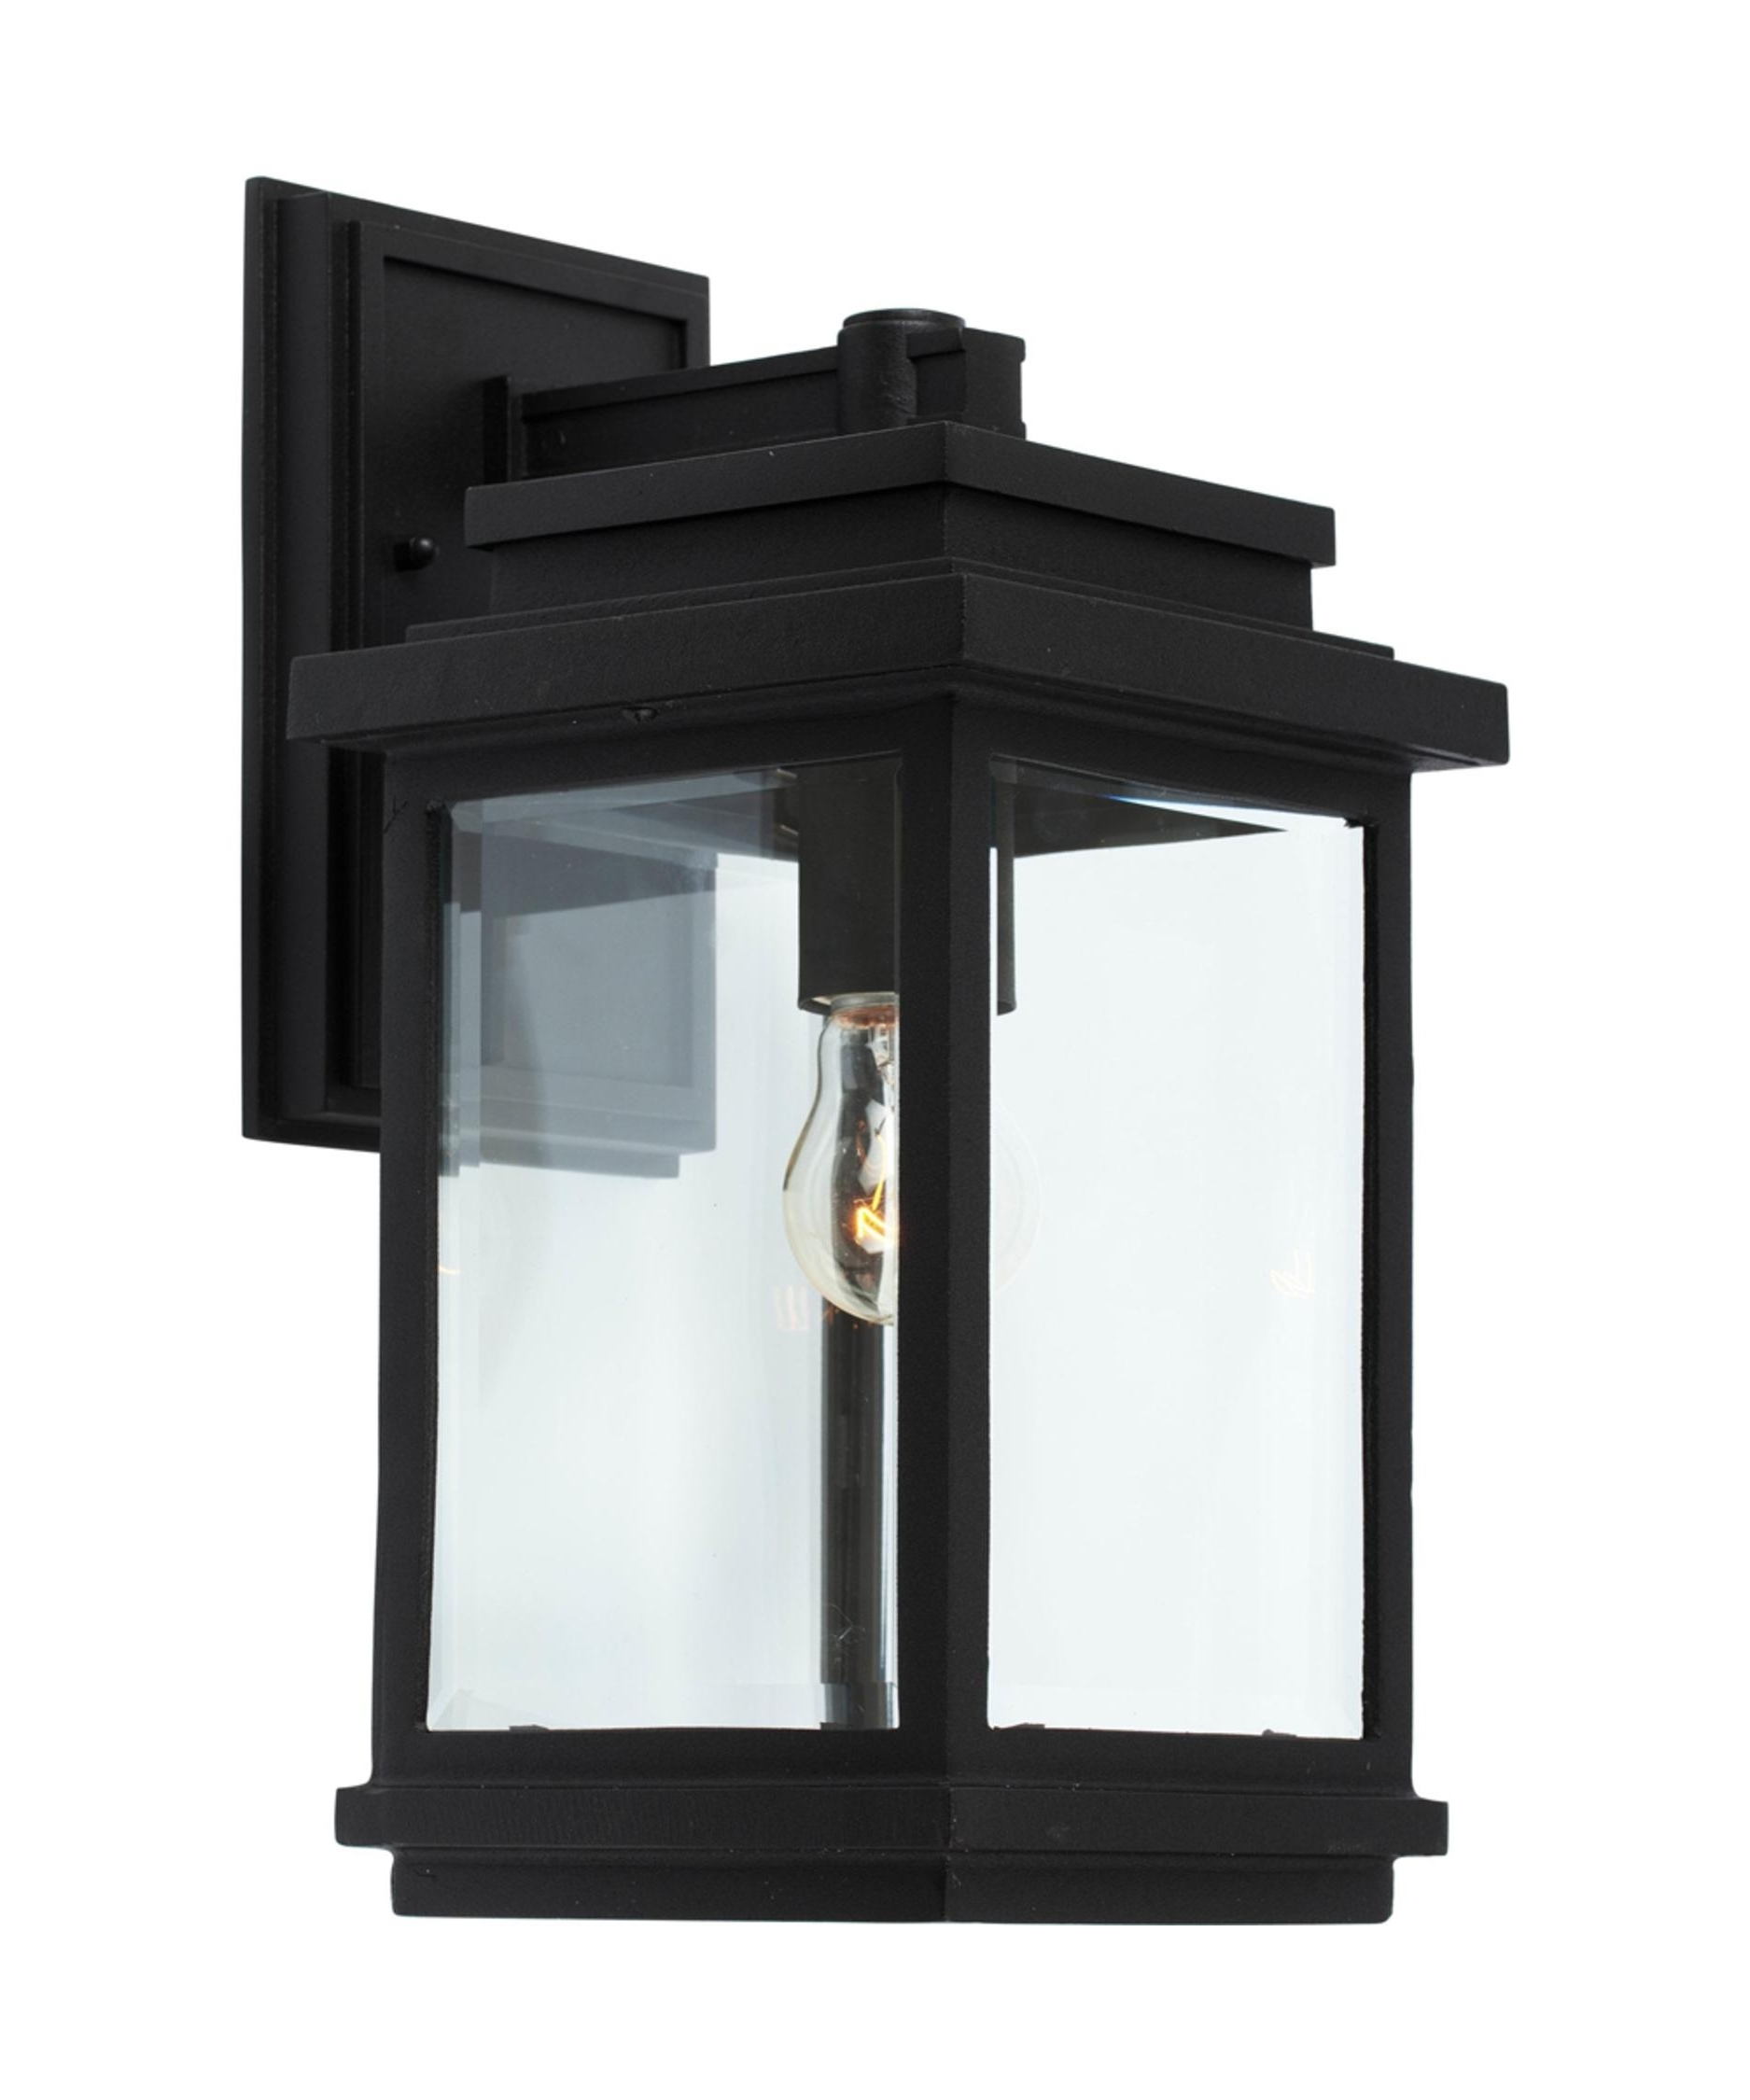 2018 Outdoor Wall Light Glass Within Artcraft Ac8290 Fremont 7 Inch Wide 1 Light Outdoor Wall Light (View 1 of 20)